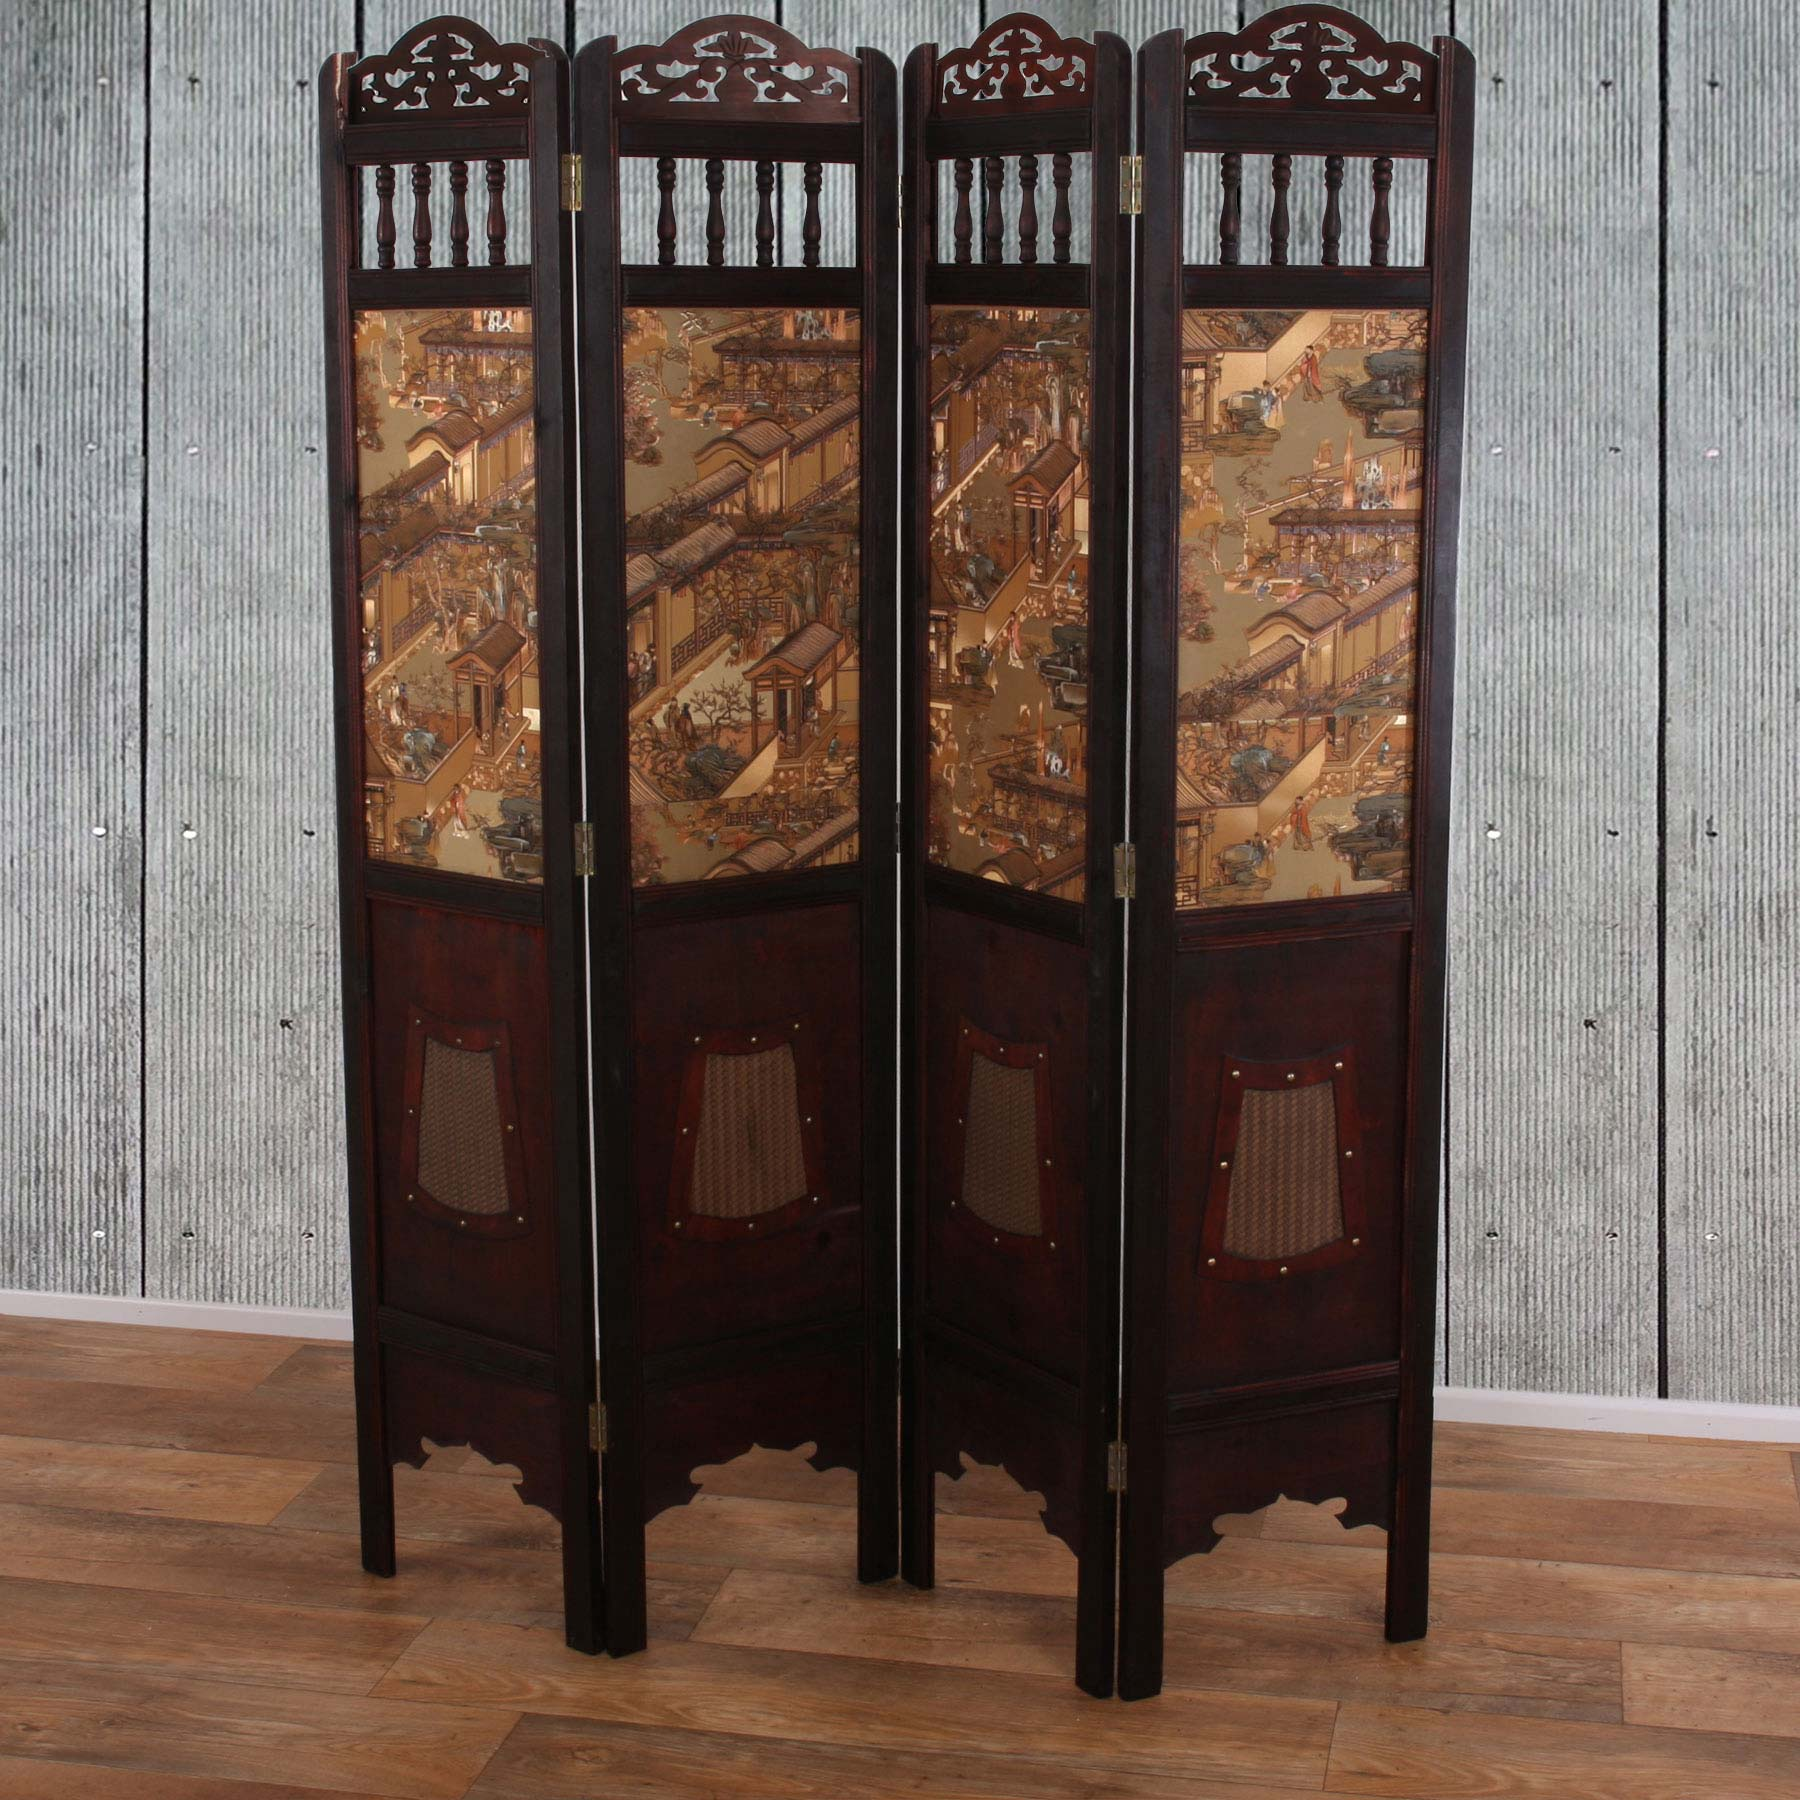 paravent shanghai chinesischer raumteiler holz 175x150cm ebay. Black Bedroom Furniture Sets. Home Design Ideas